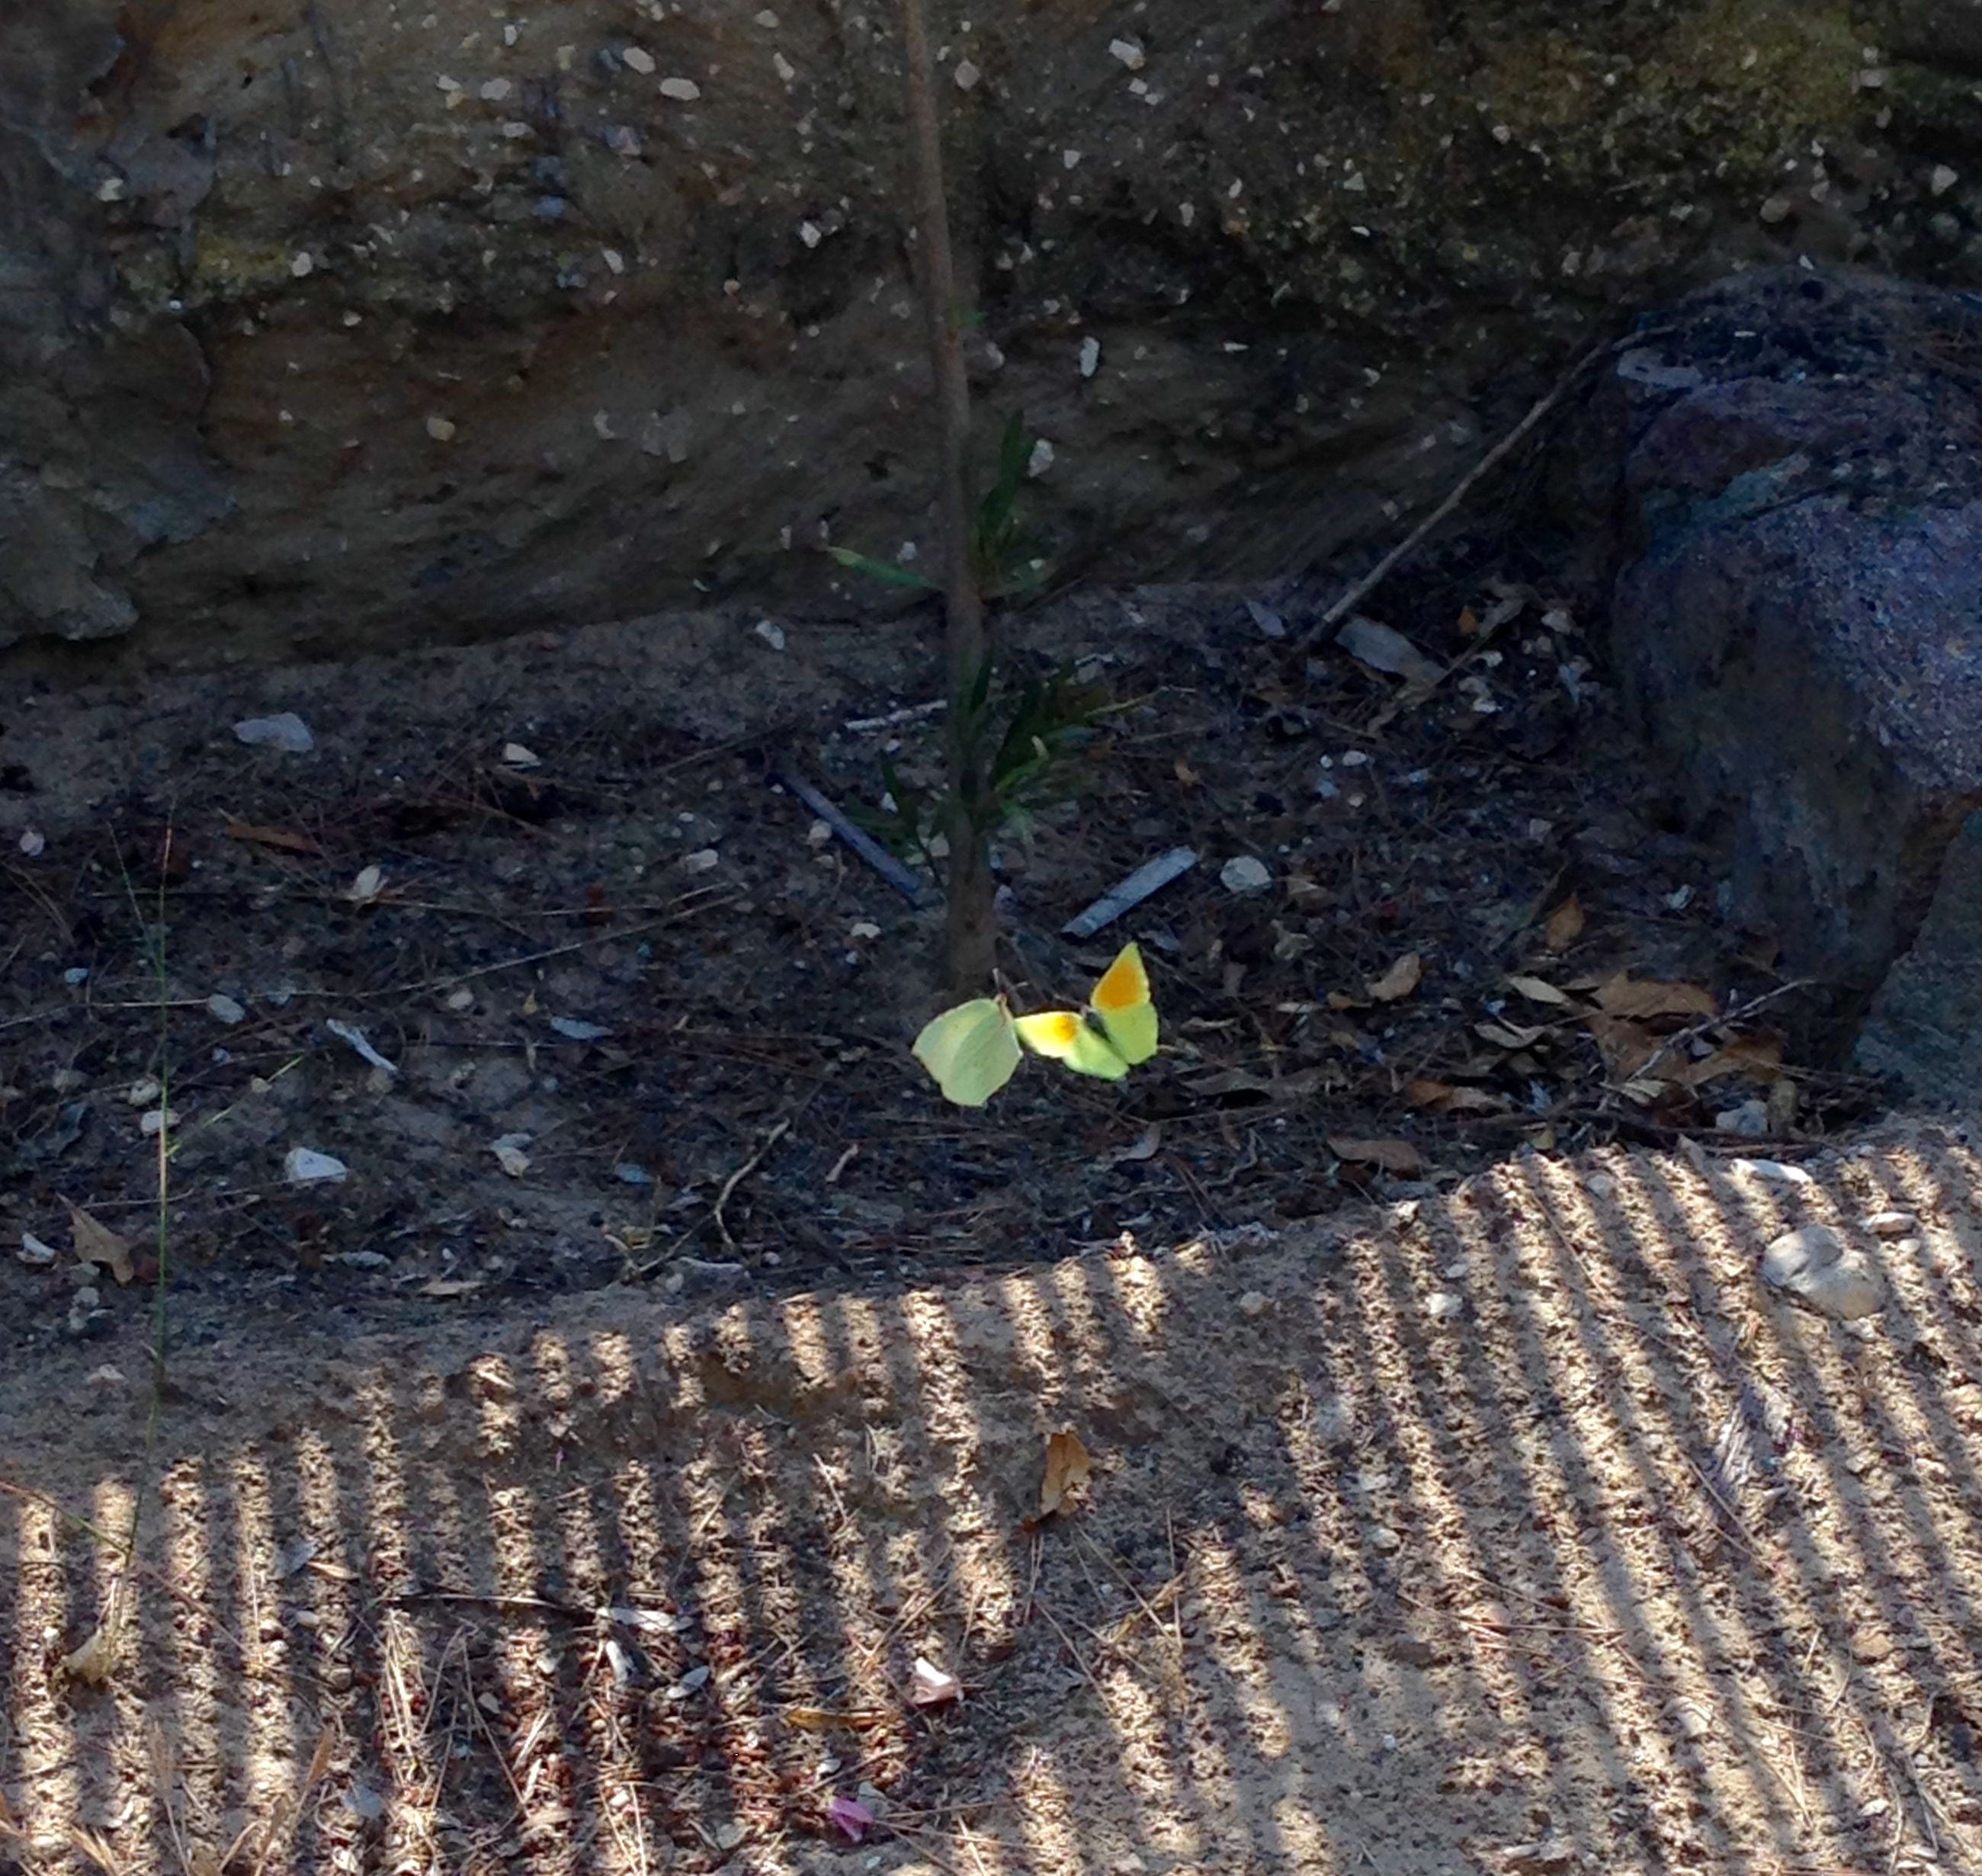 high angle view, nature, yellow, sand, day, tranquility, outdoors, ground, growth, rock - object, no people, close-up, field, sunlight, dry, leaf, beauty in nature, beach, fallen, stone - object